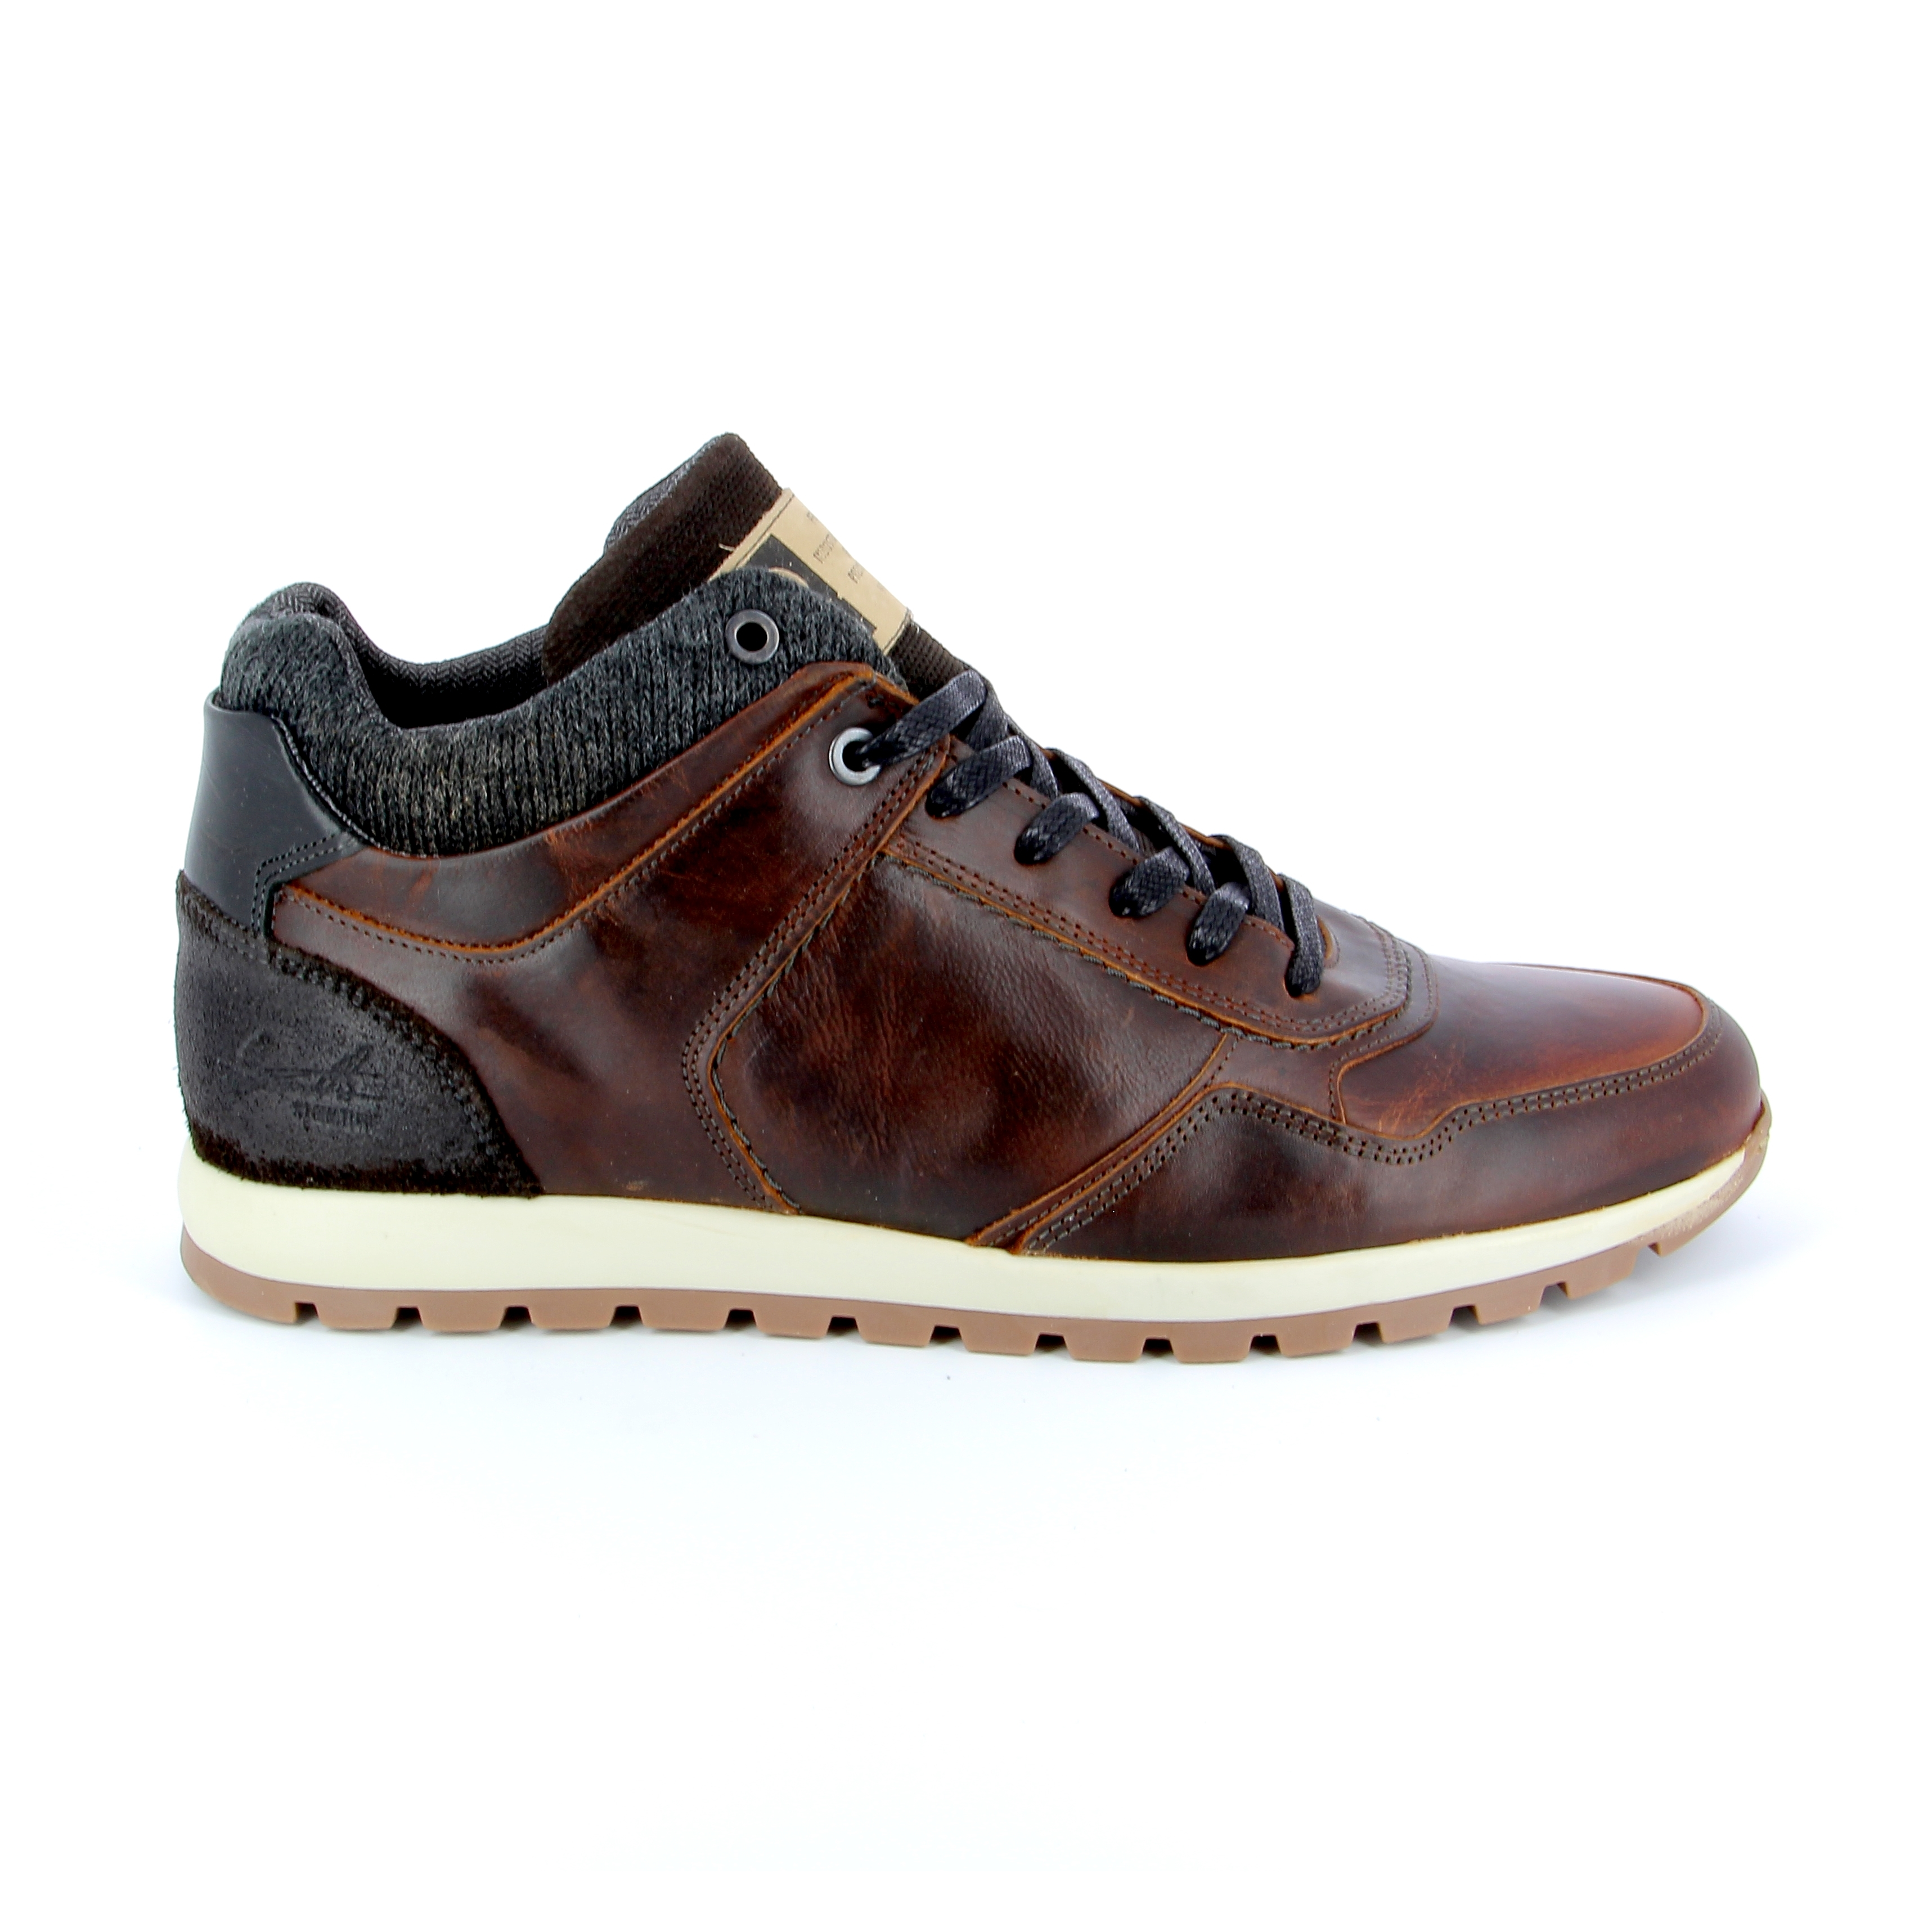 Bullboxer Bottines brun